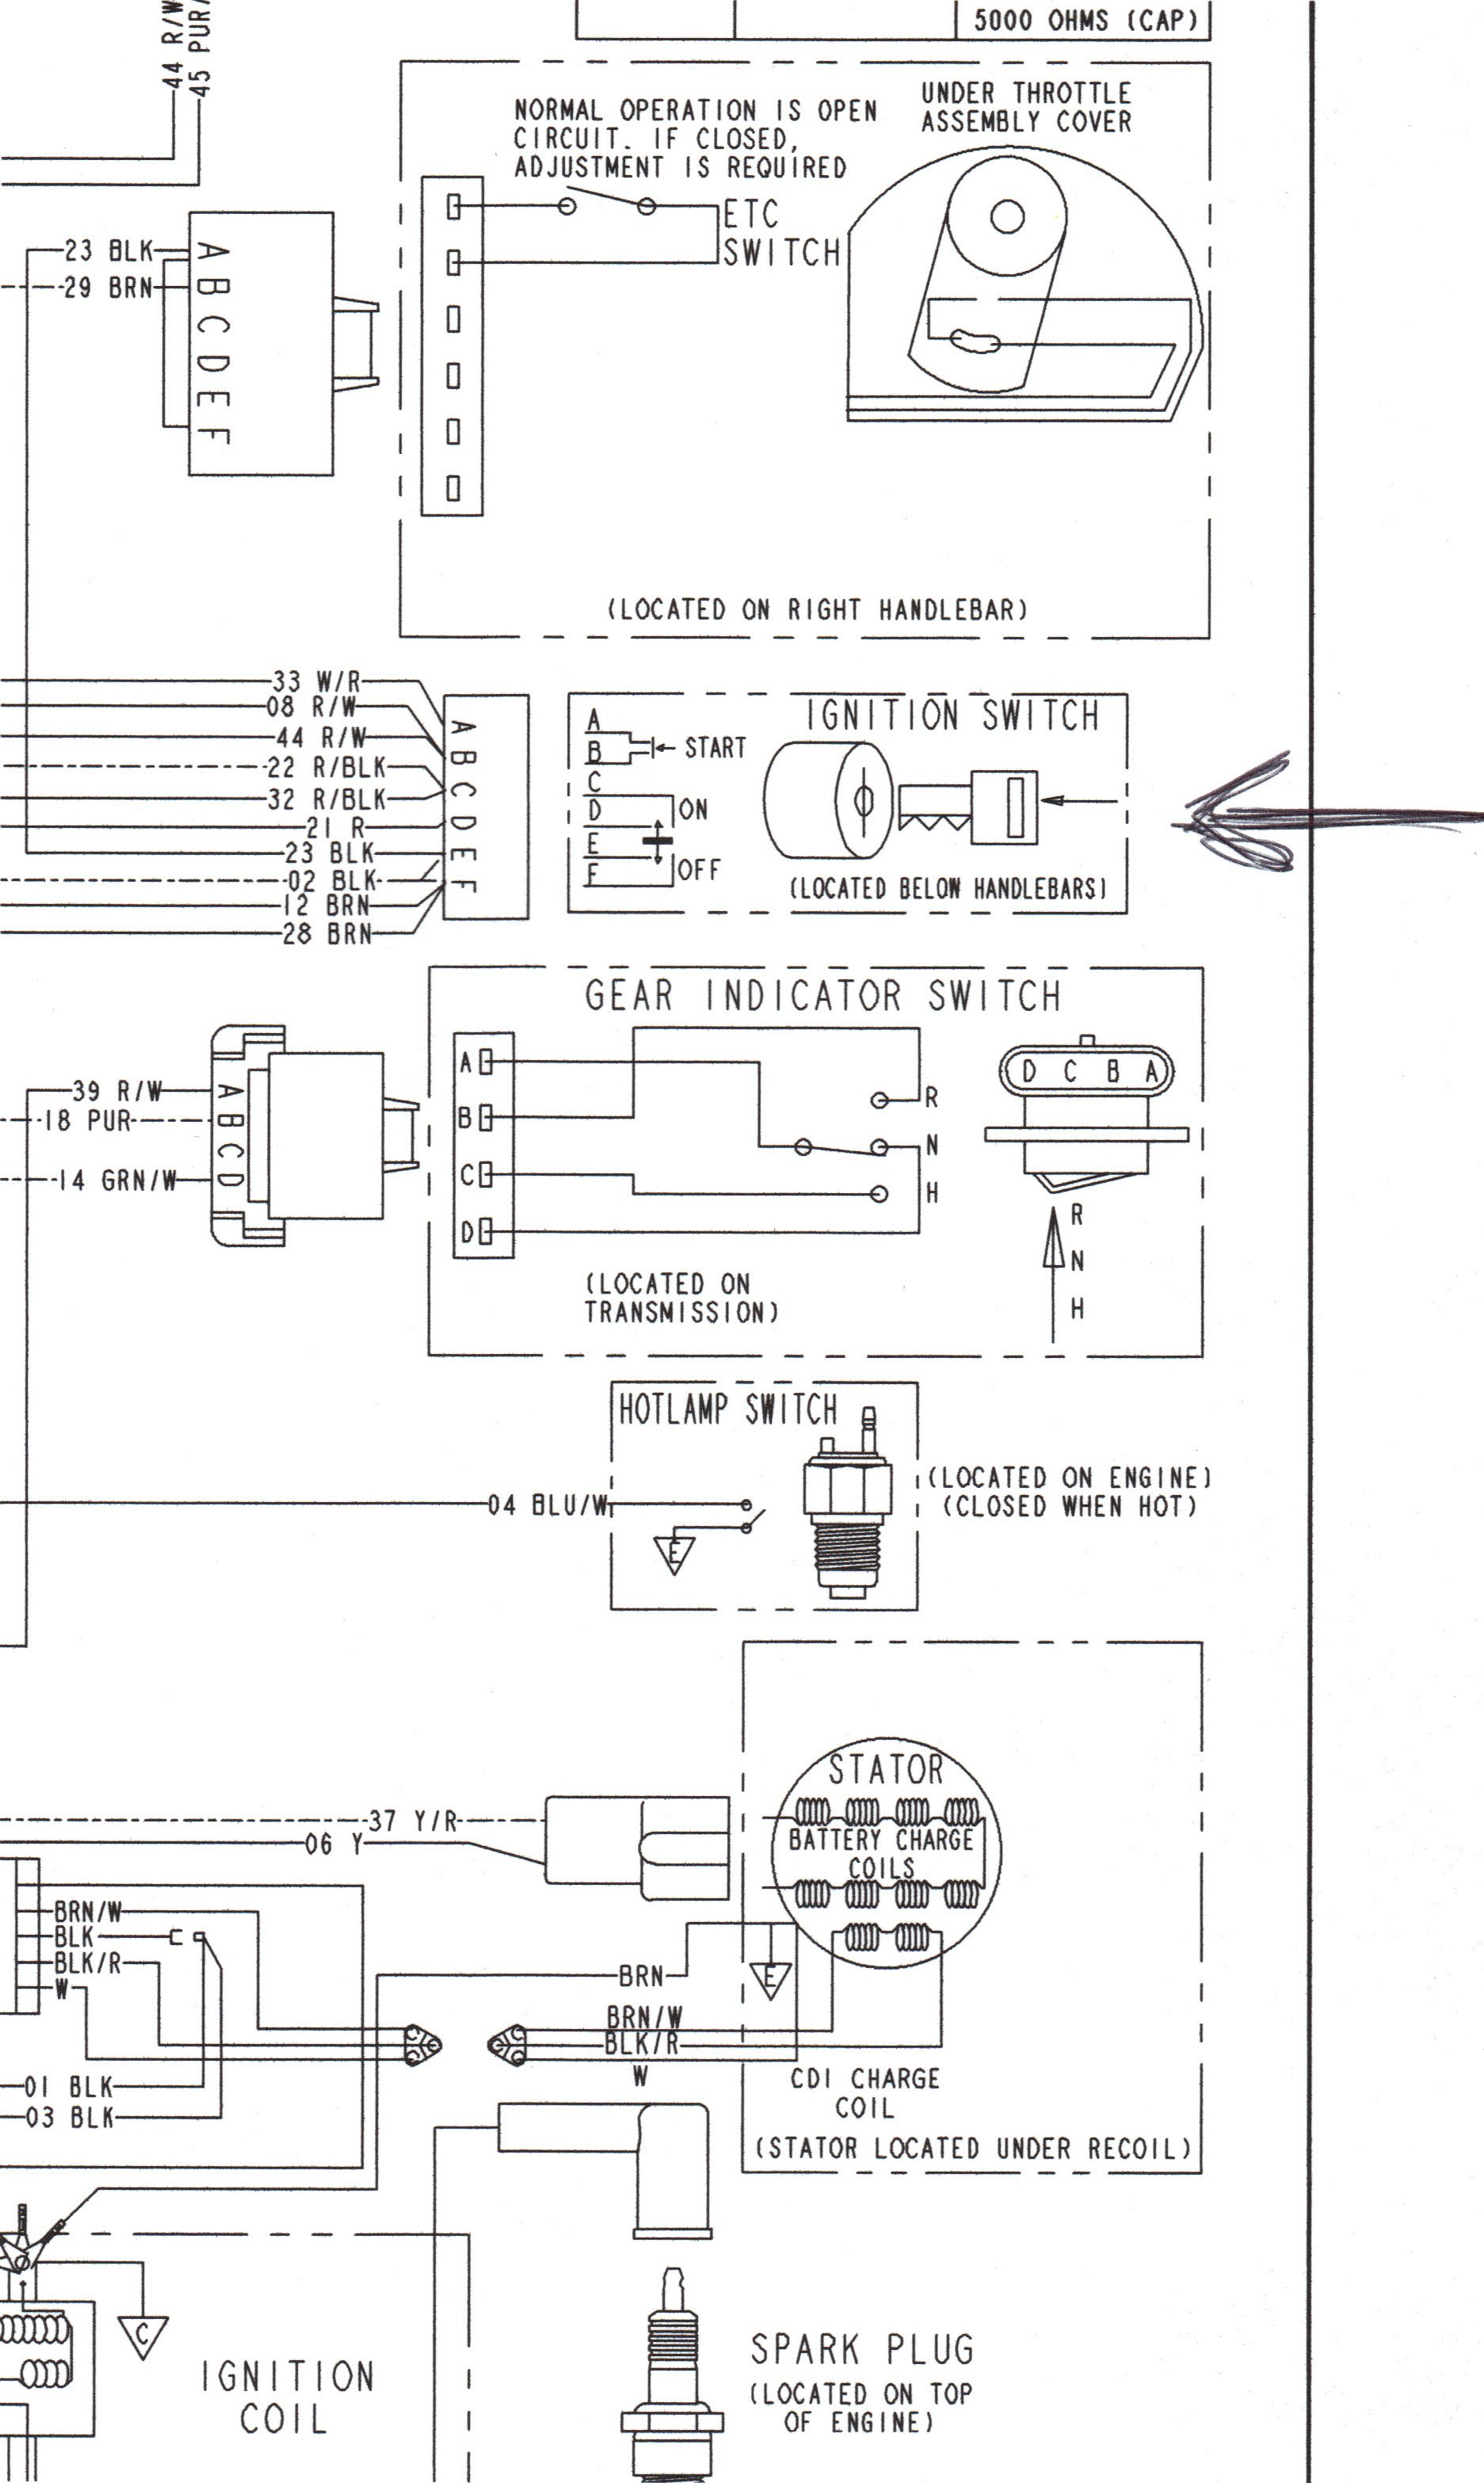 ✦DIAGRAM BASED✦ Polaris Scrambler 400 4x4 Wiring Diagram COMPLETED DIAGRAM  BASE Wiring Diagram - PAUL.BRICKHILL.EARDIAGRAM.PCINFORMI.ITDiagram Based Completed Edition - PcInformi